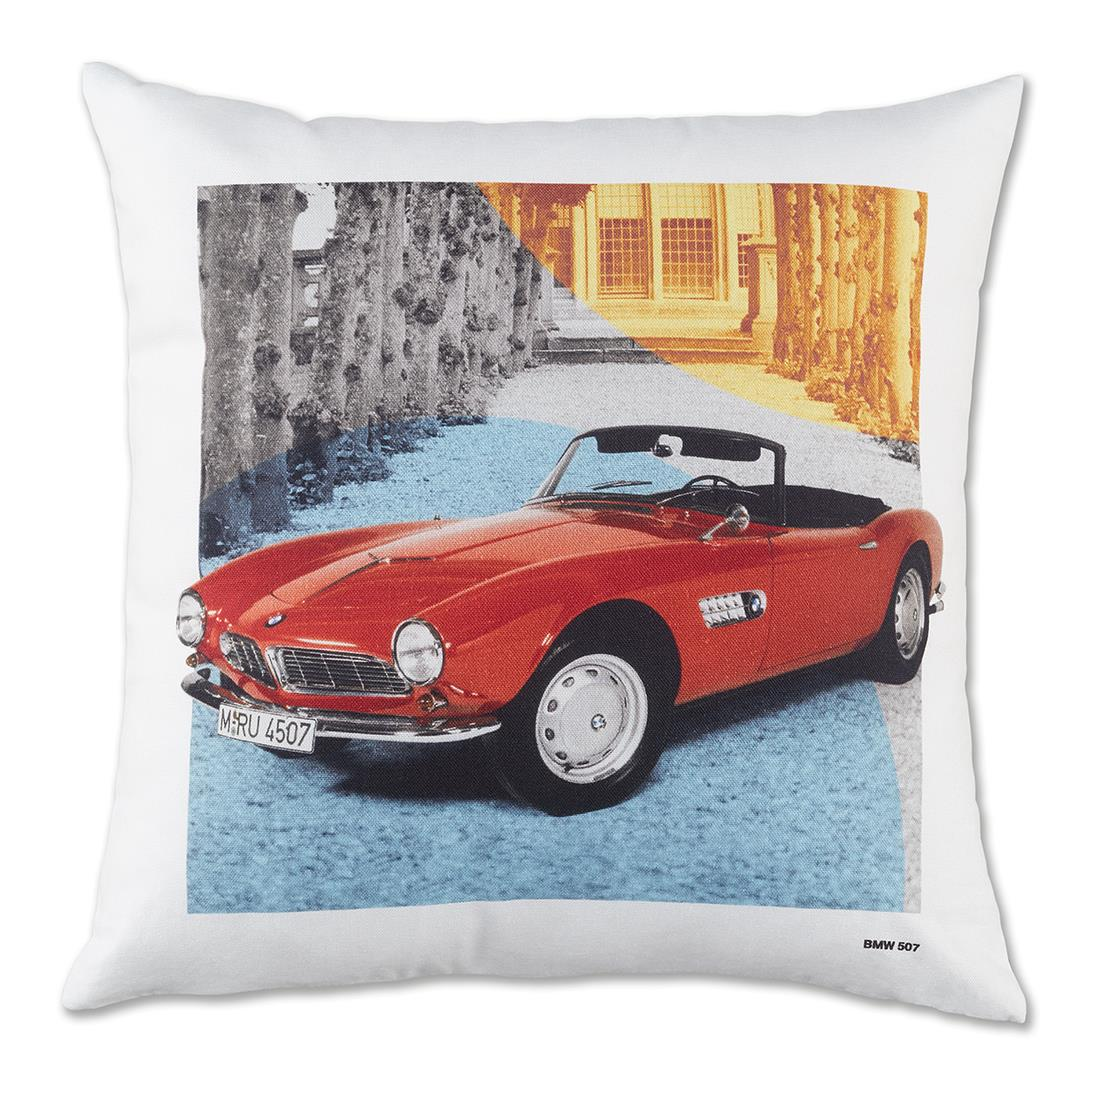 BMW Classic Pillow BMW 507